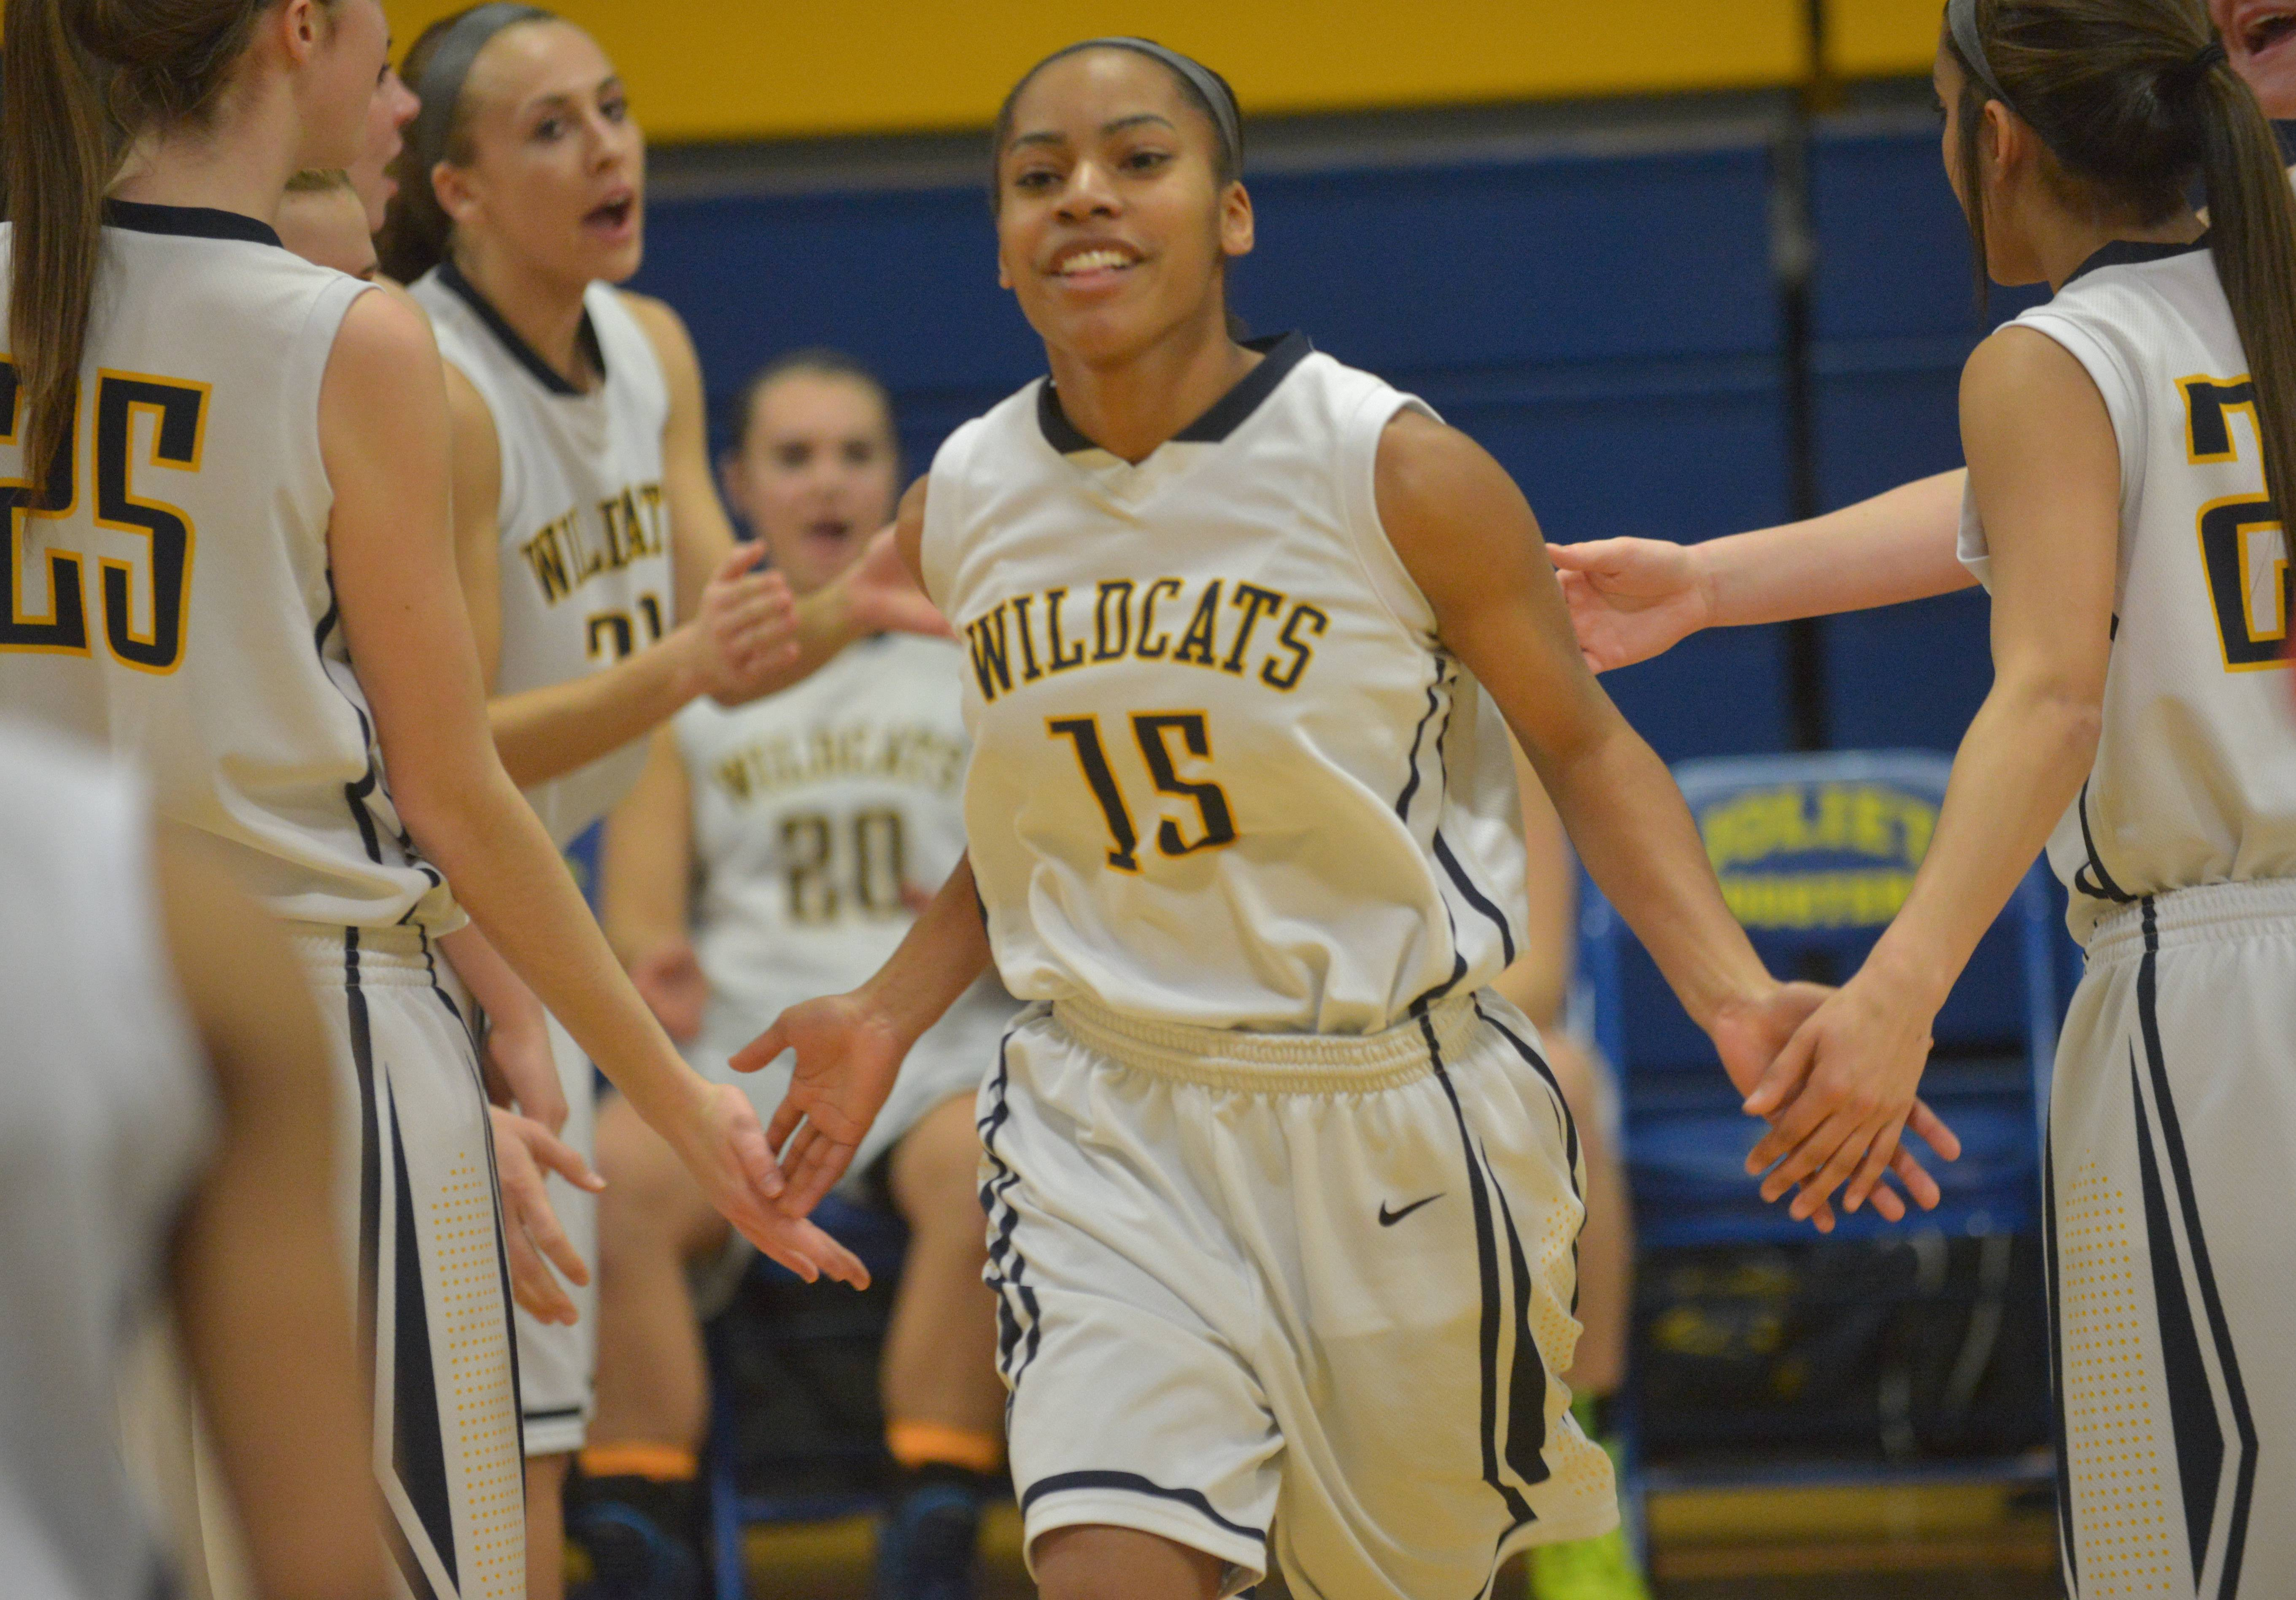 Images: Neuqua Valley vs. Oswego girls basketball